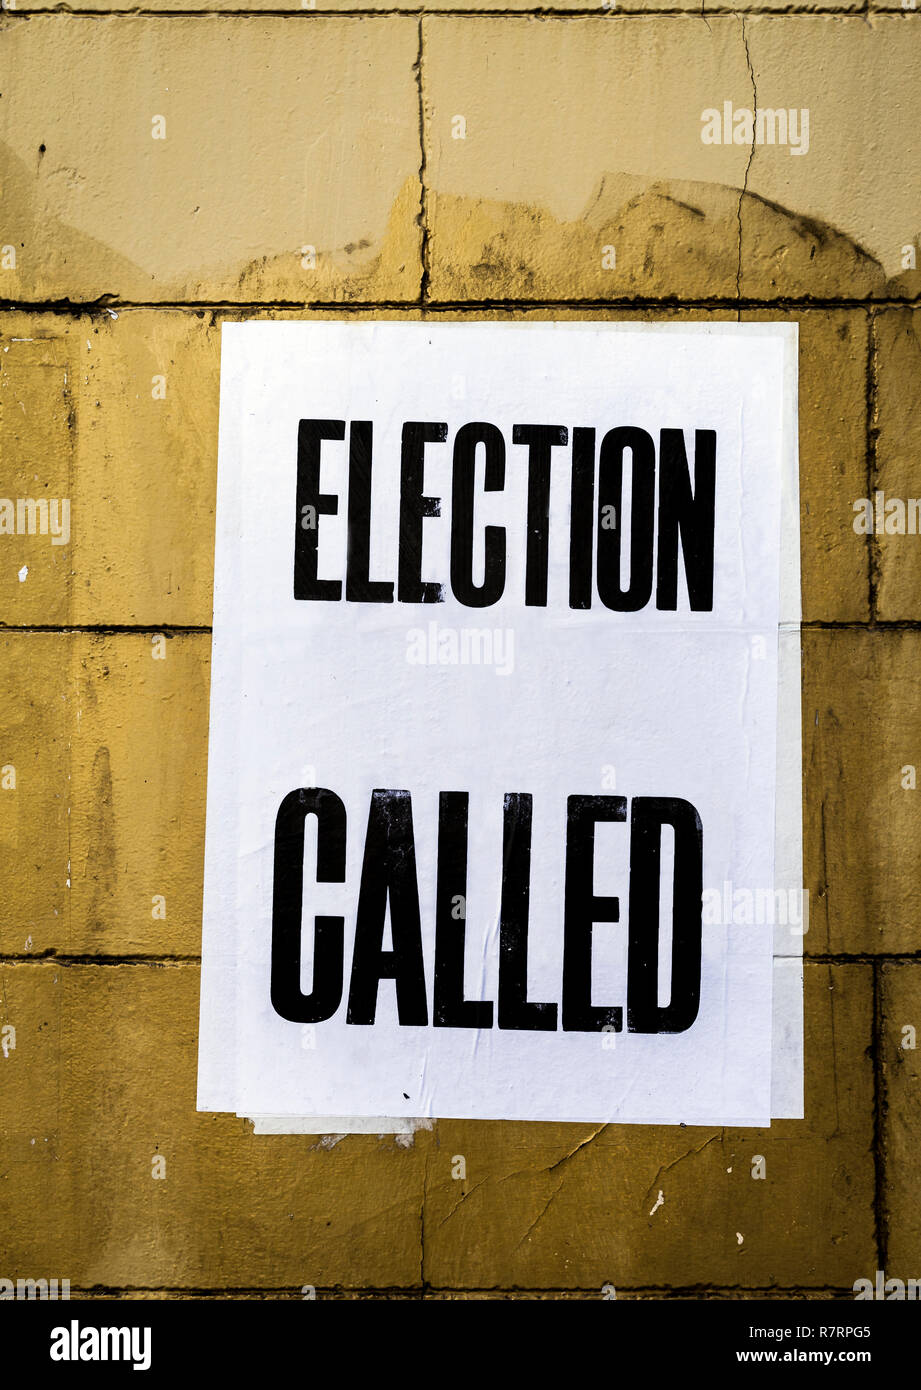 Poster with words Election Called in bold text overlapping more poster papers pasted onto dirty stained yellow brick wall. - Stock Image